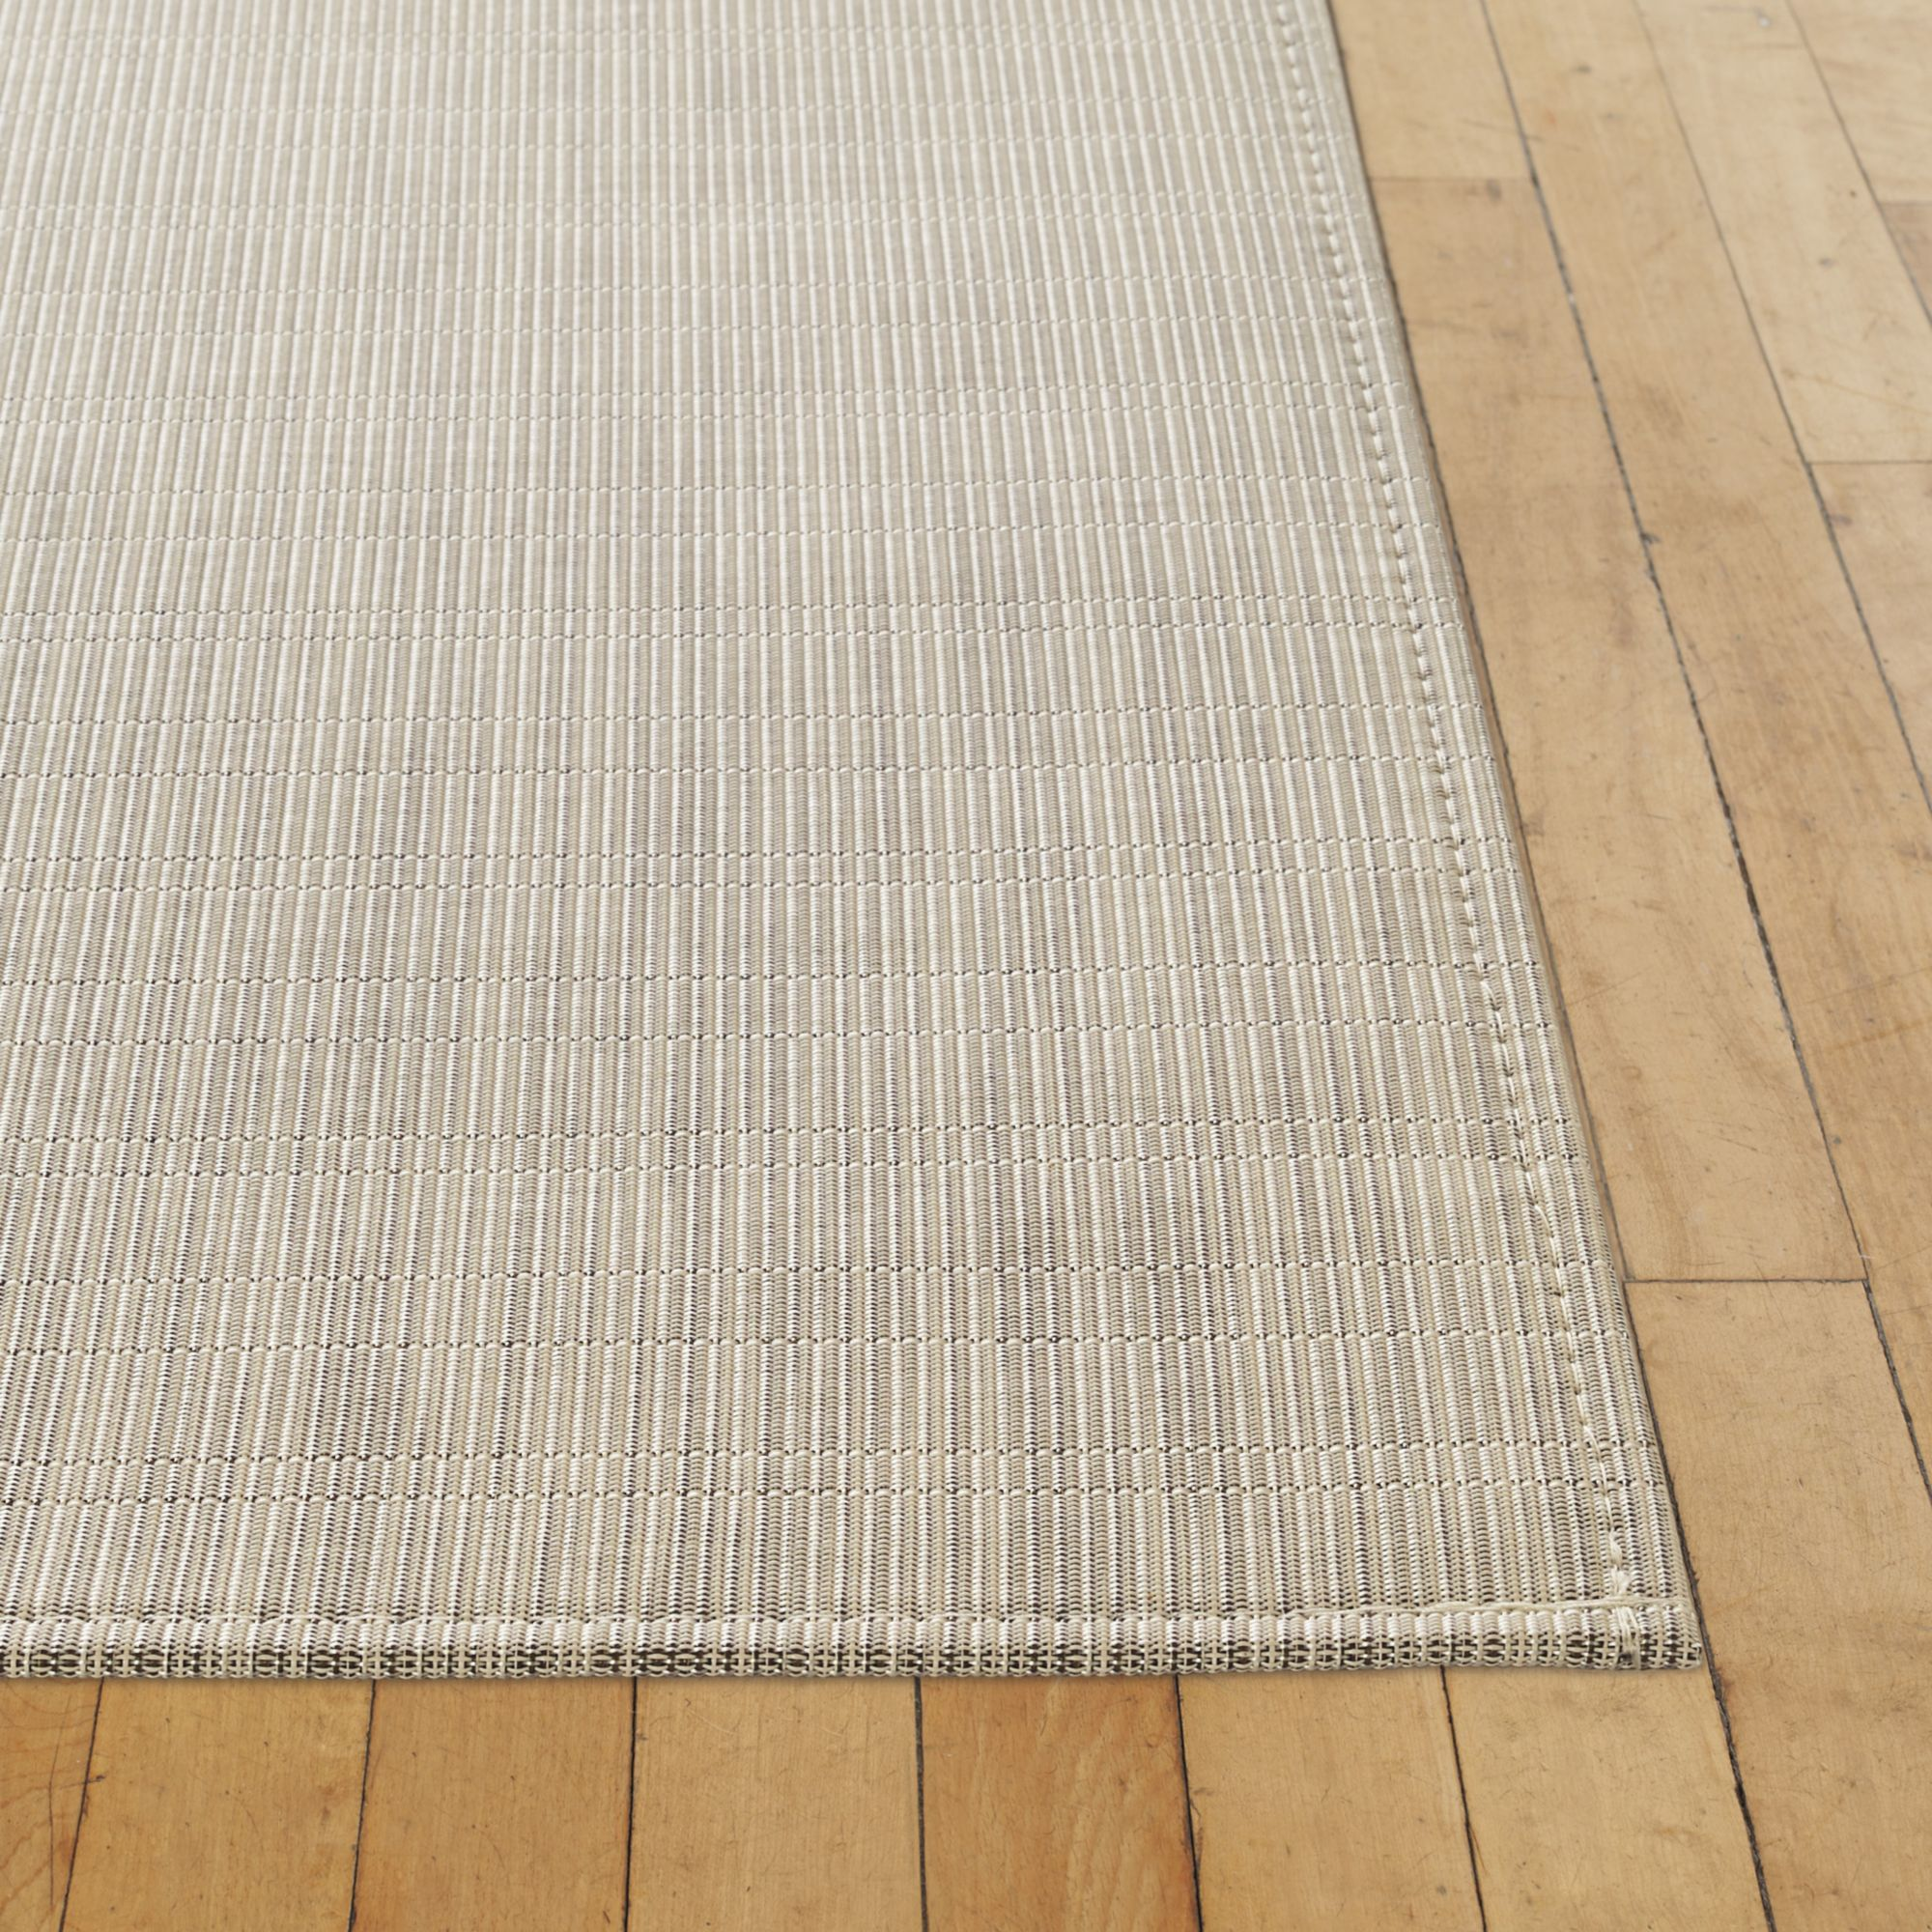 Chilewich Basketweave Mat Design Within Reach Rugs